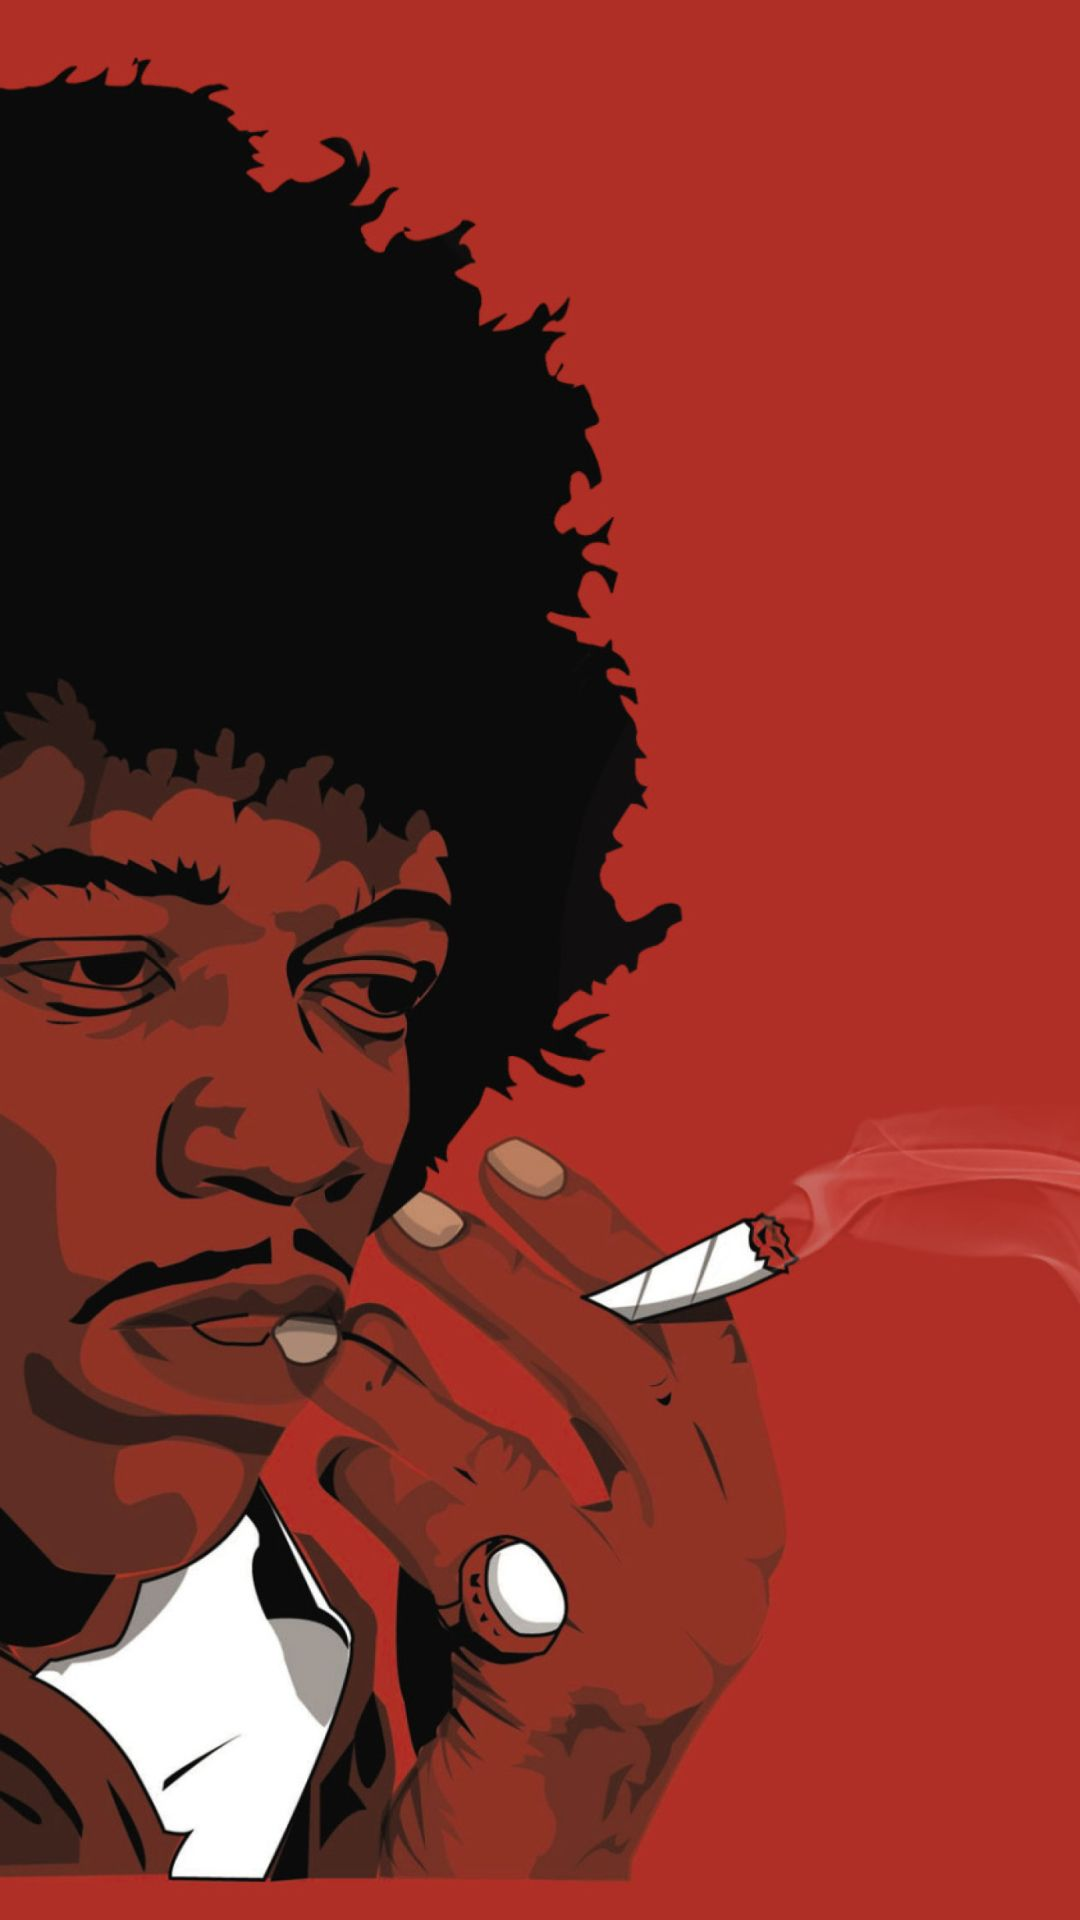 1080x1920 Jimi Hendrix iPhone Wallpapers - WallpaperPulse